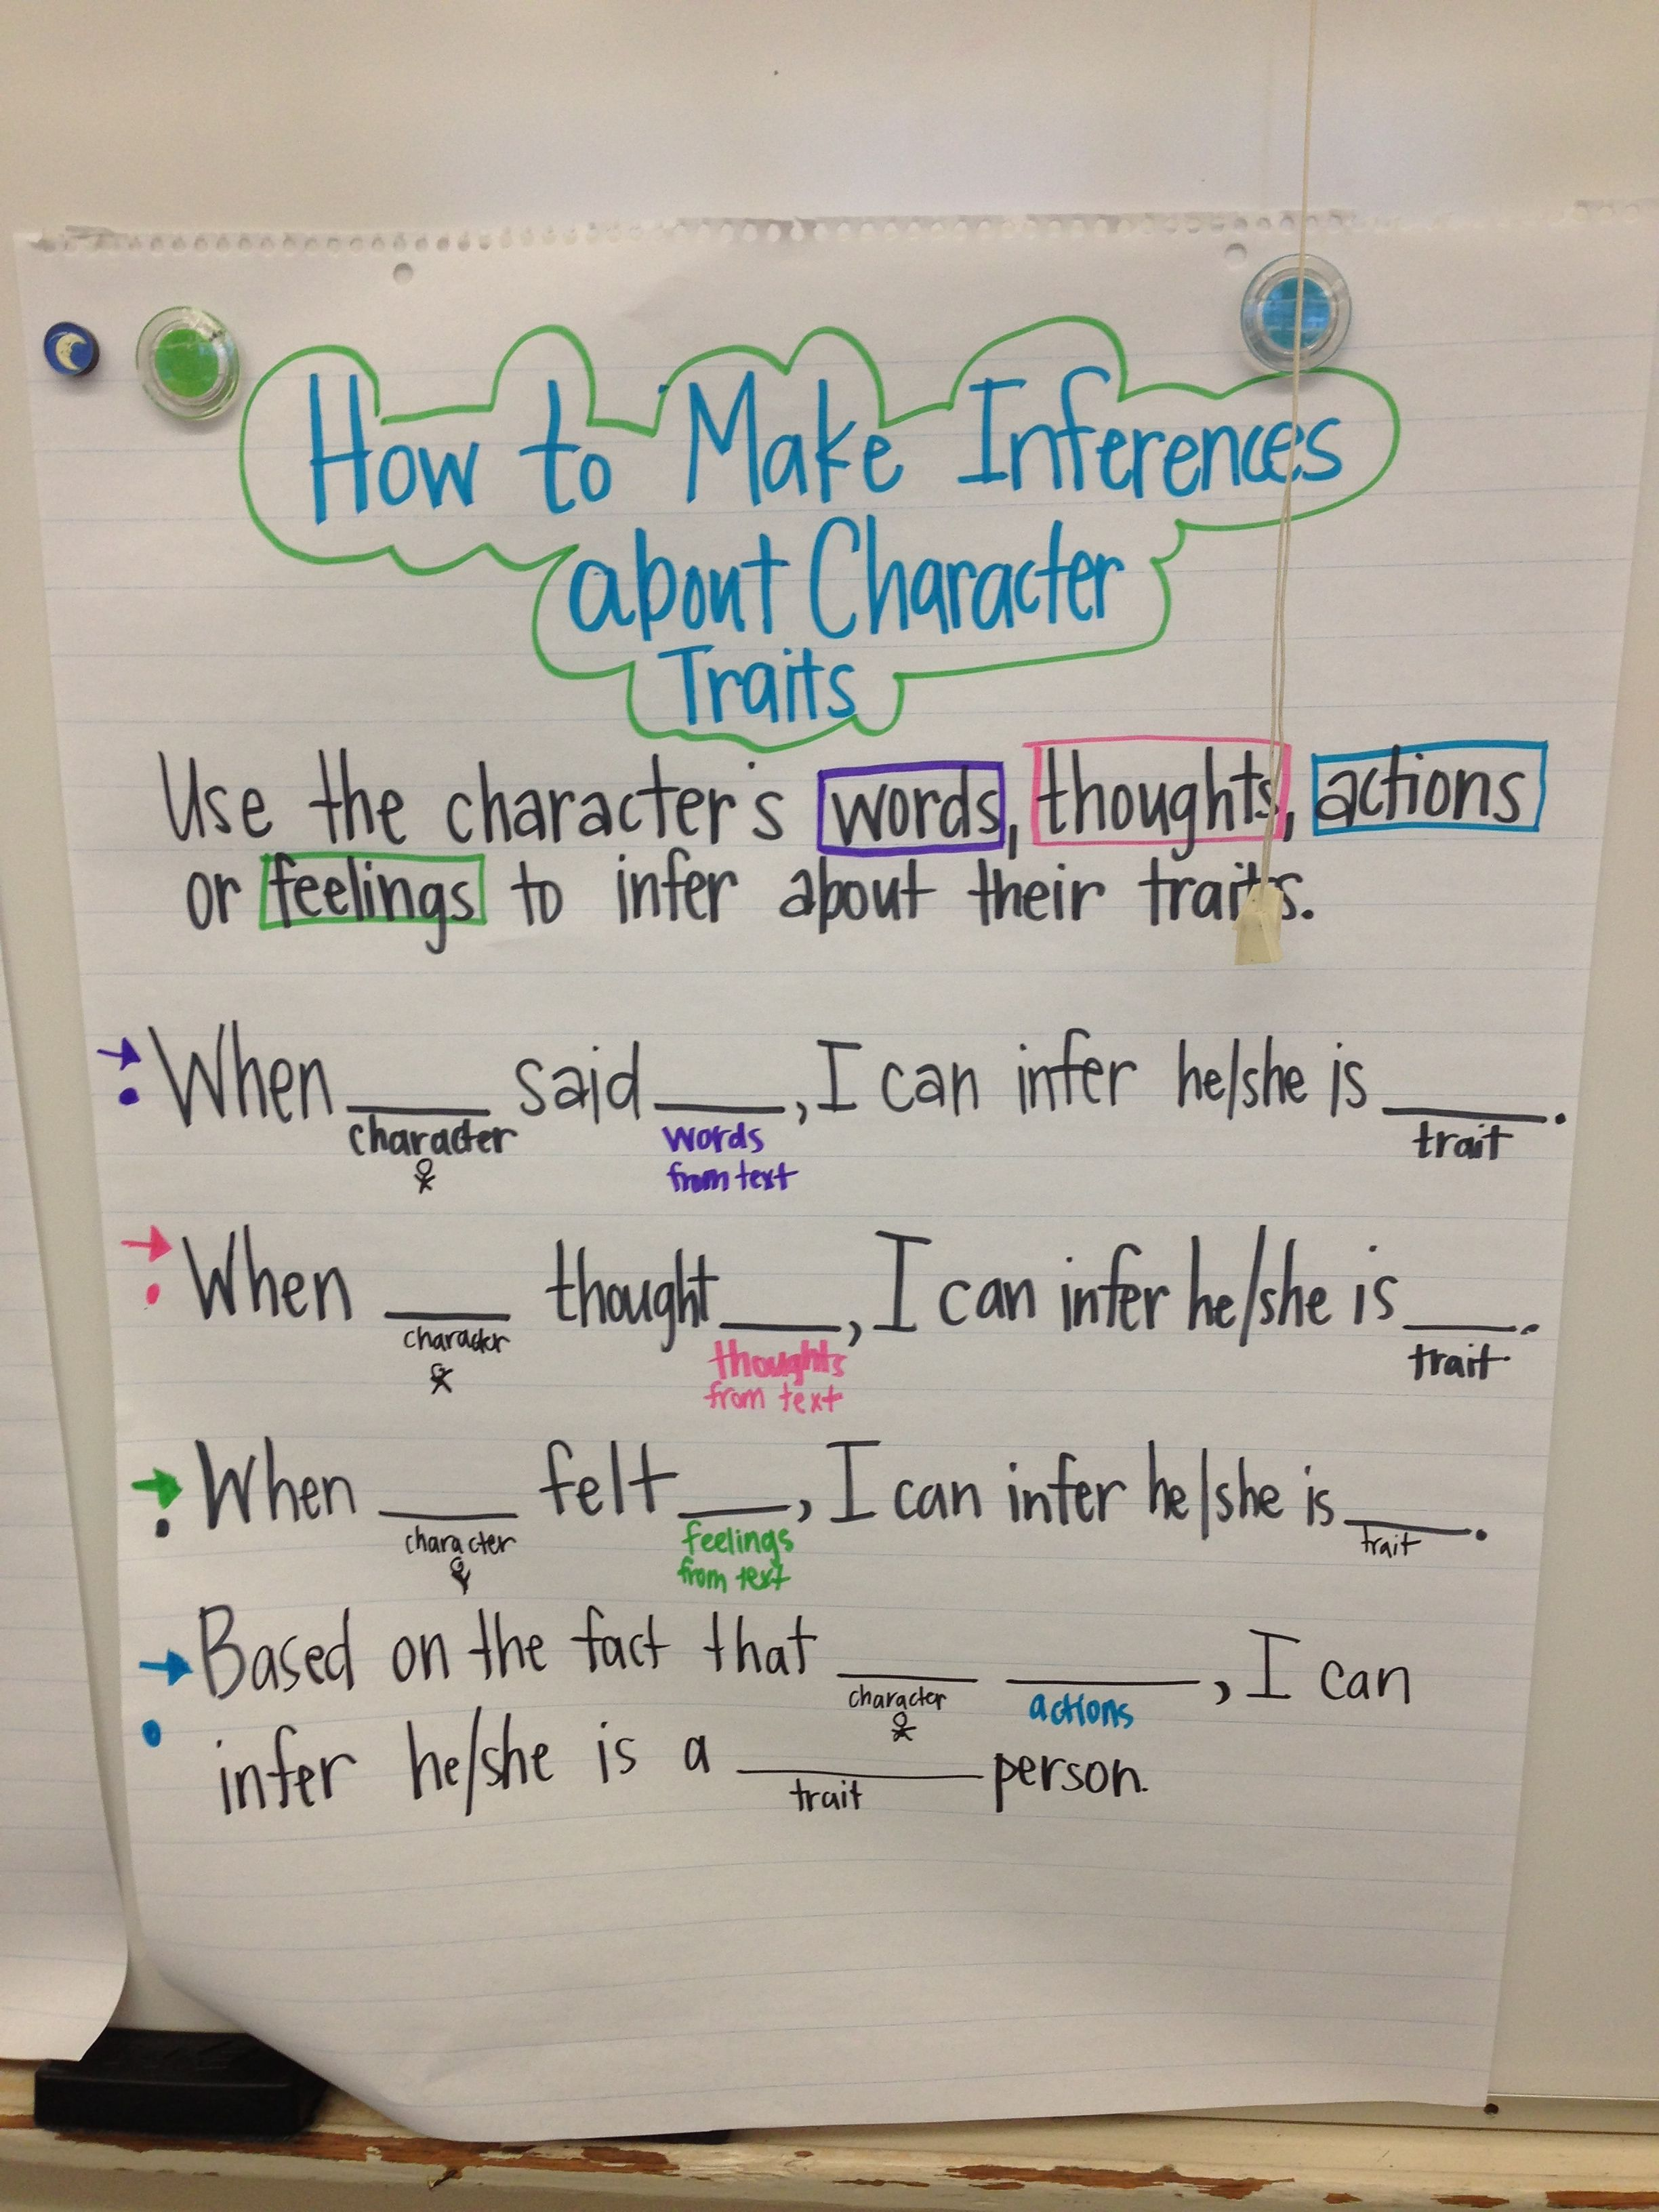 Sentence Frames For Ell For Making Inferences About Character Traits